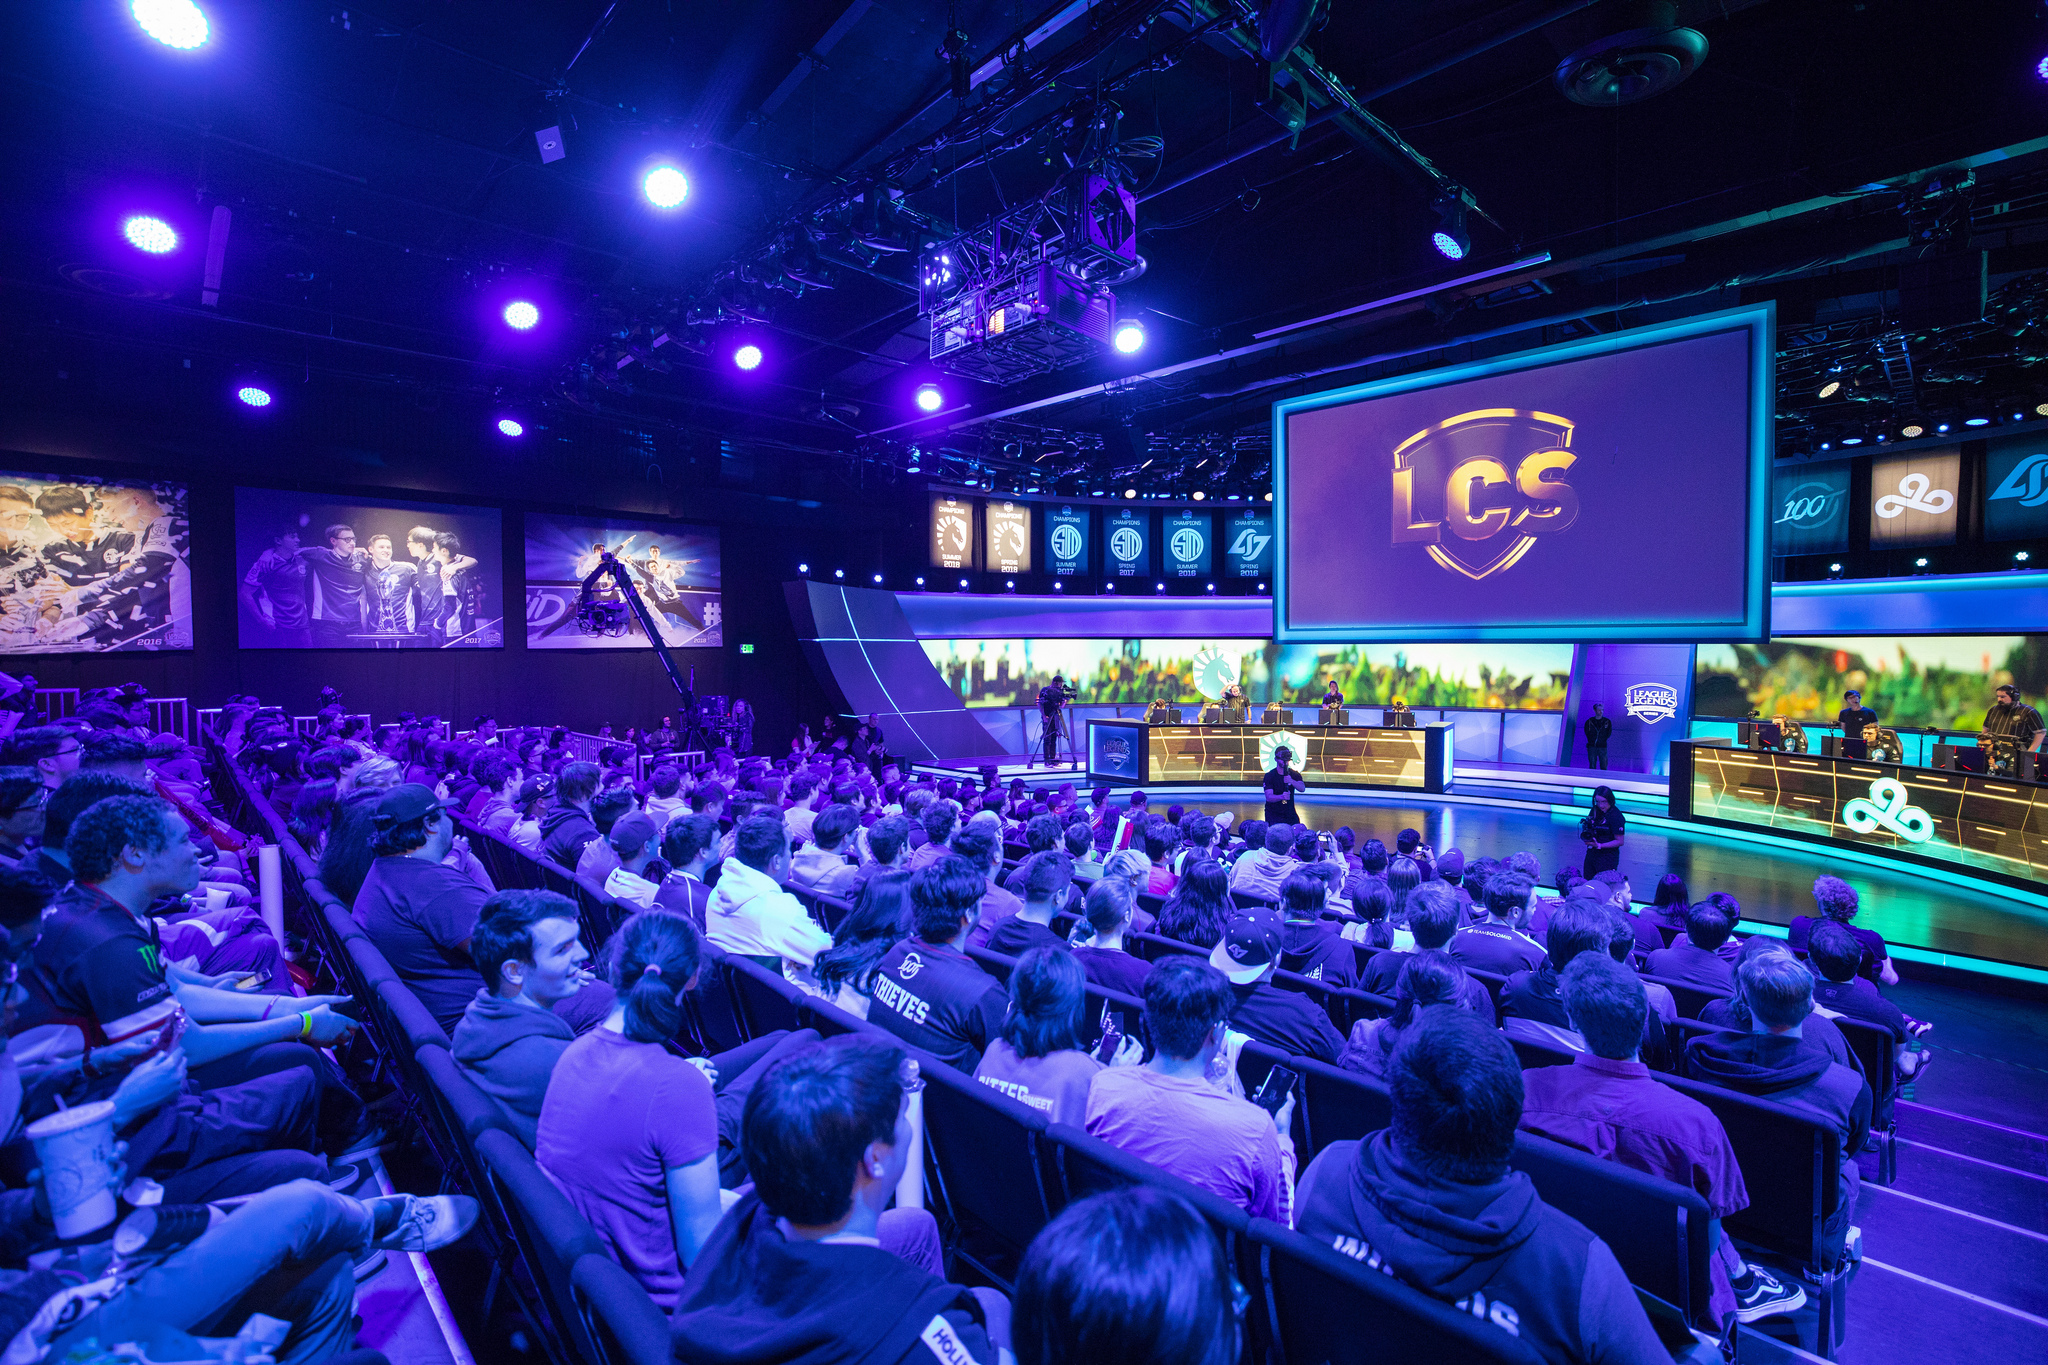 Riot won't have Fantasy LCS ready for the 2019 Summer Split